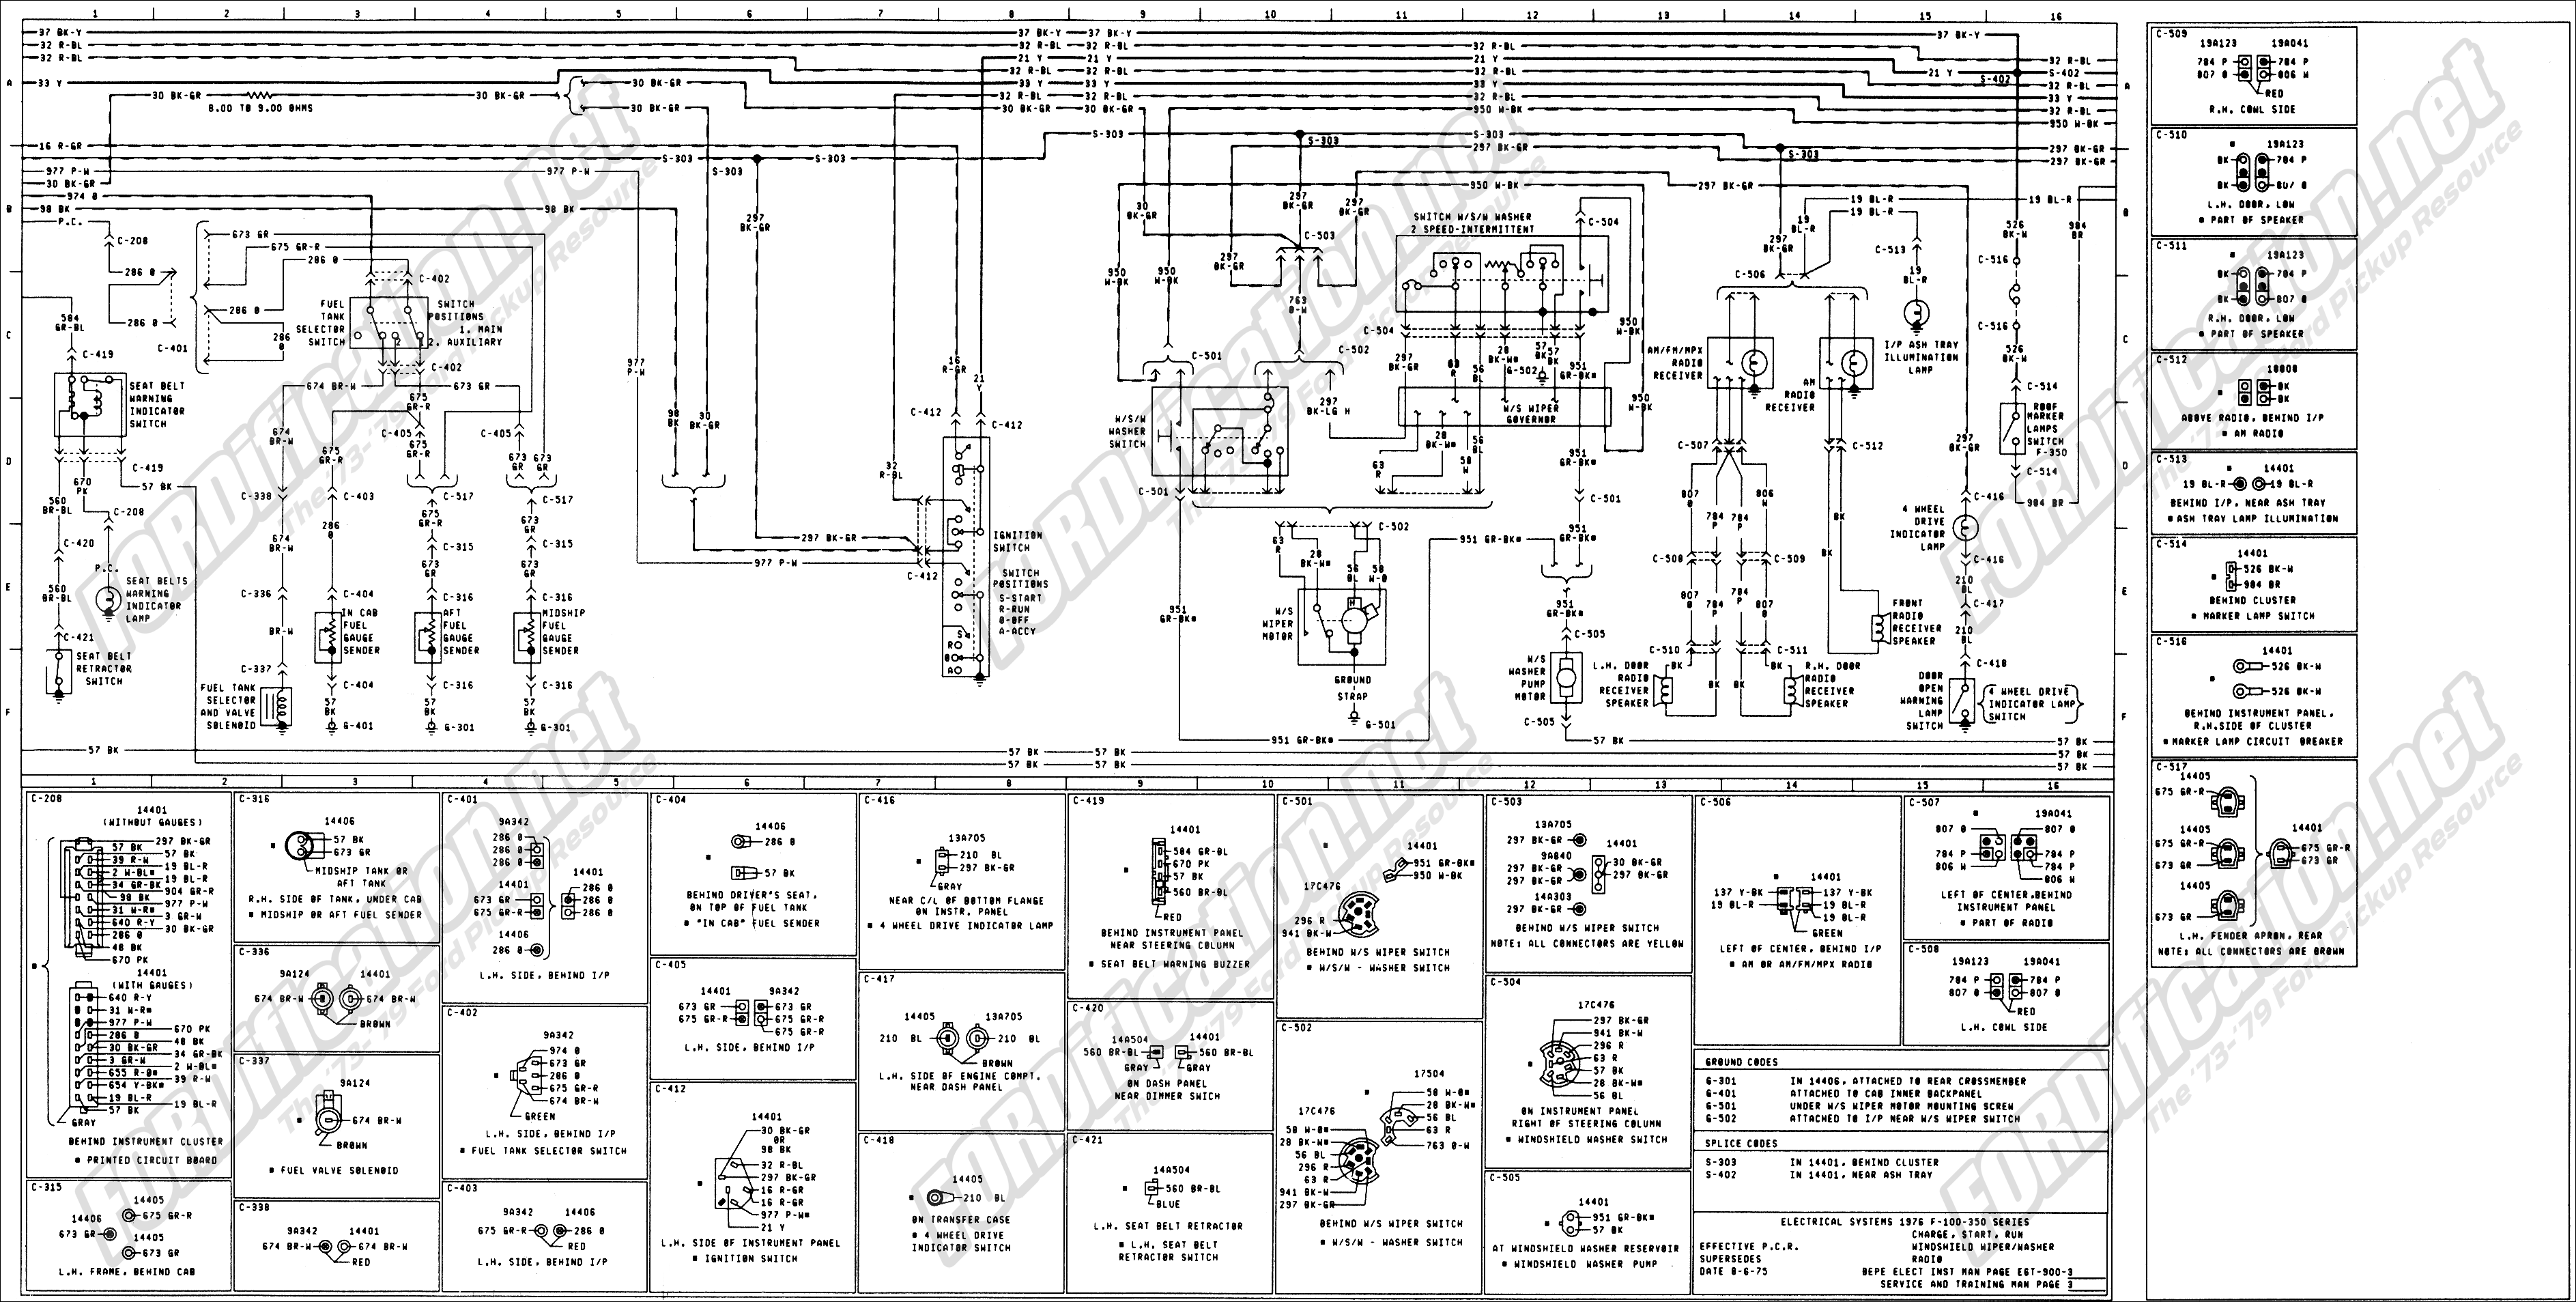 wiring_76master_3of9 1987 ford f 250 wiring diagram wiring diagram simonand 1979 ford f100 fuse box diagram at couponss.co